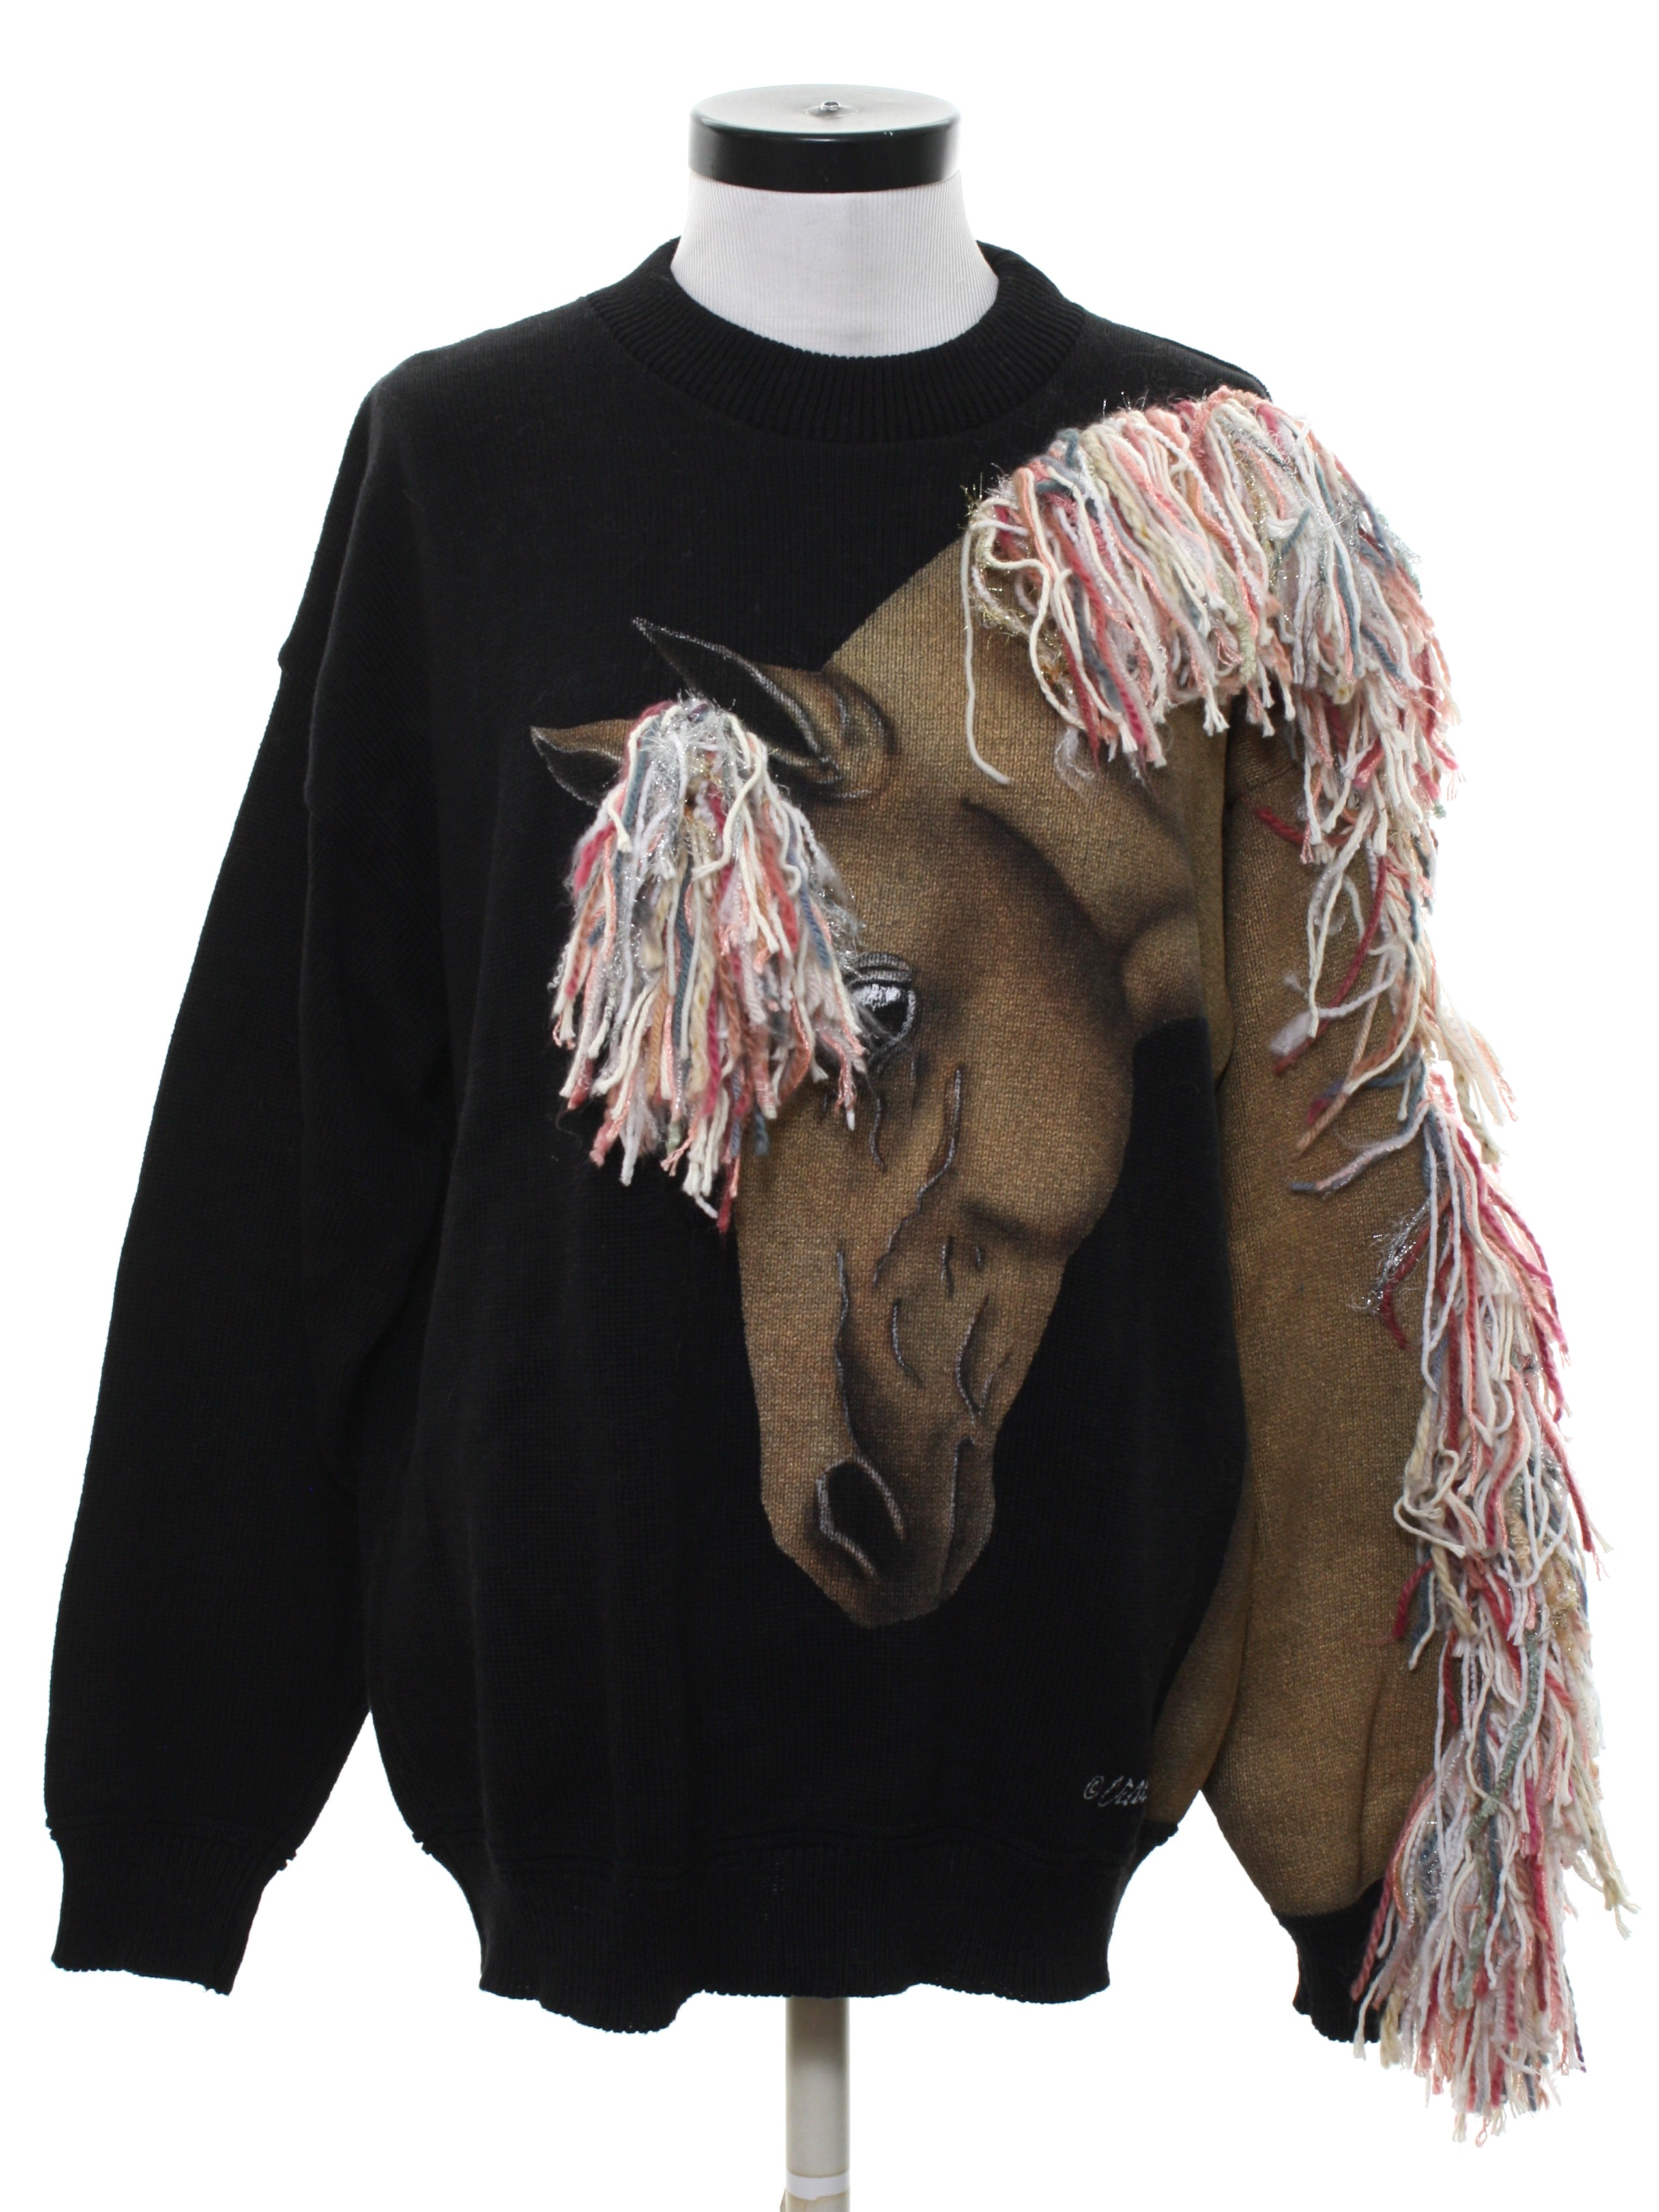 80 S Crain Sweater Late 80s Or Early 90s Crain Designer